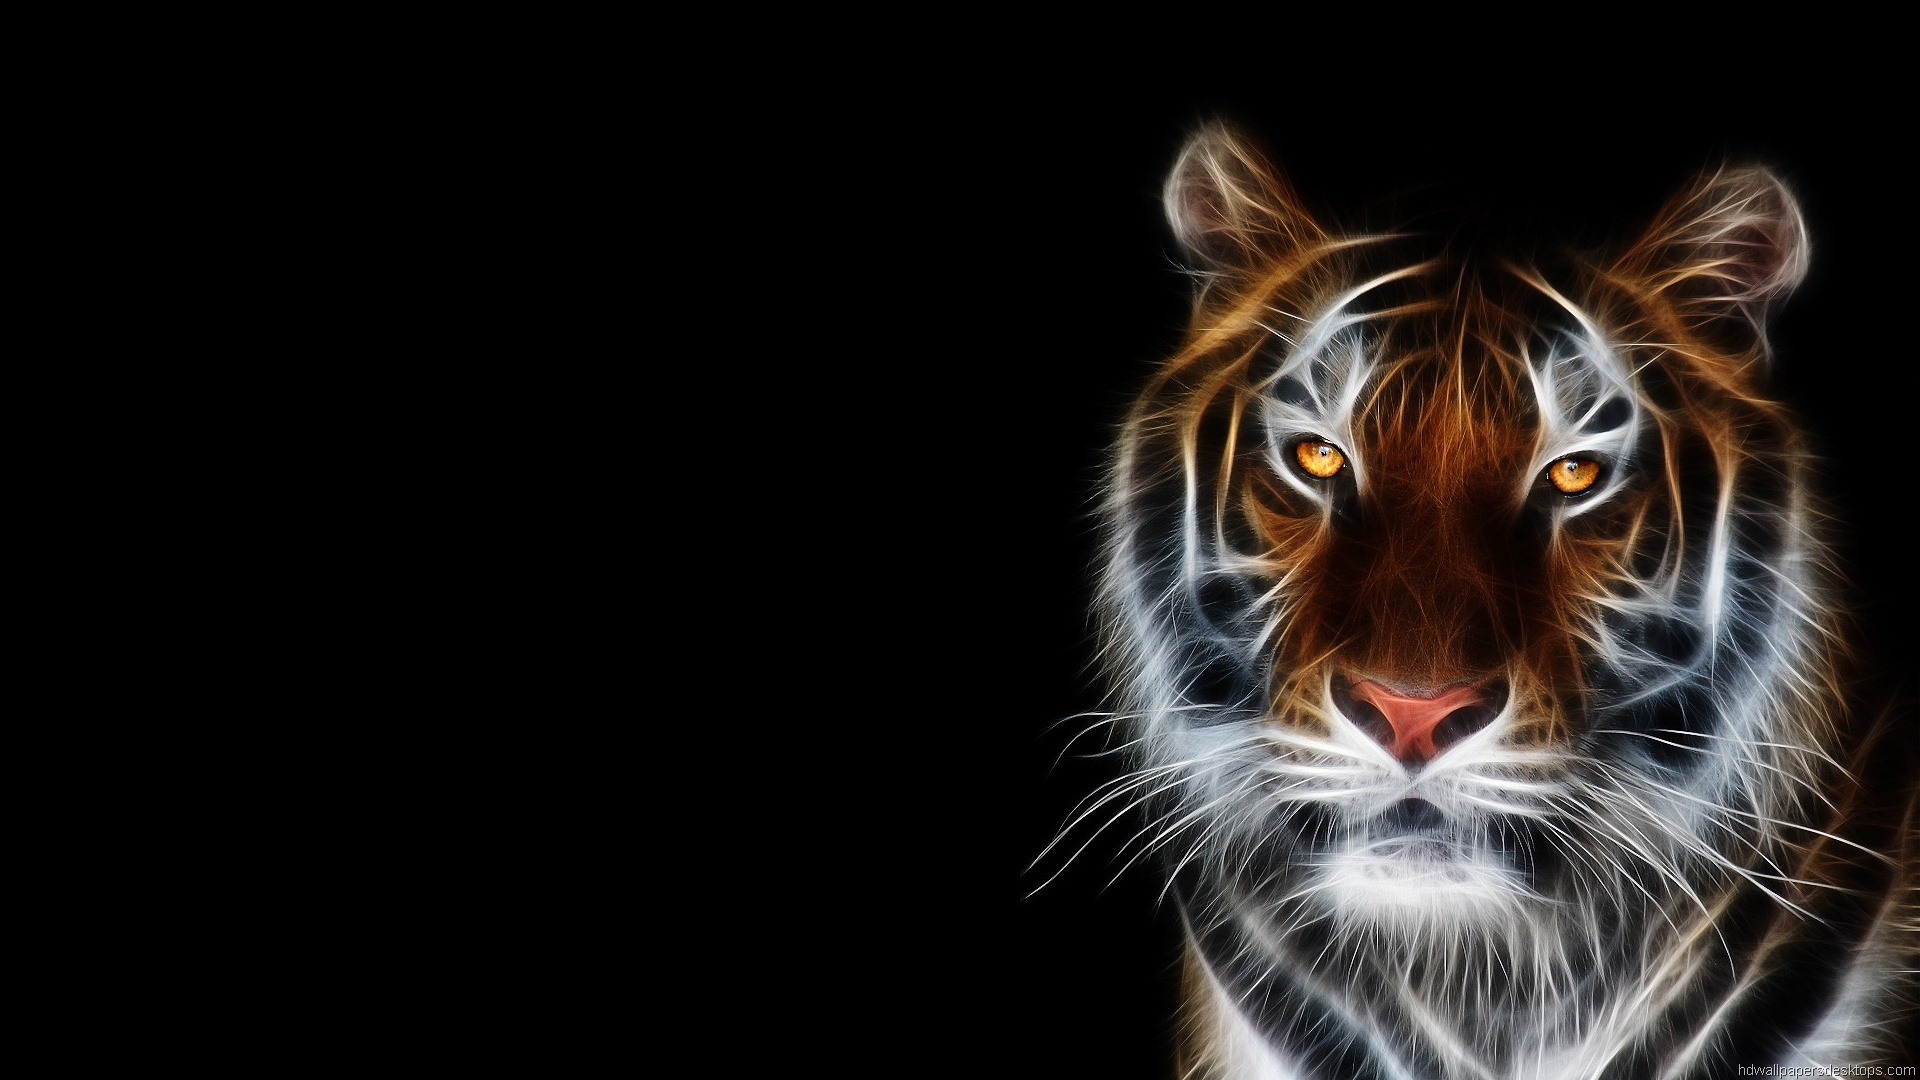 Animals 68 Hd Wallpapers Hd Wallpapers